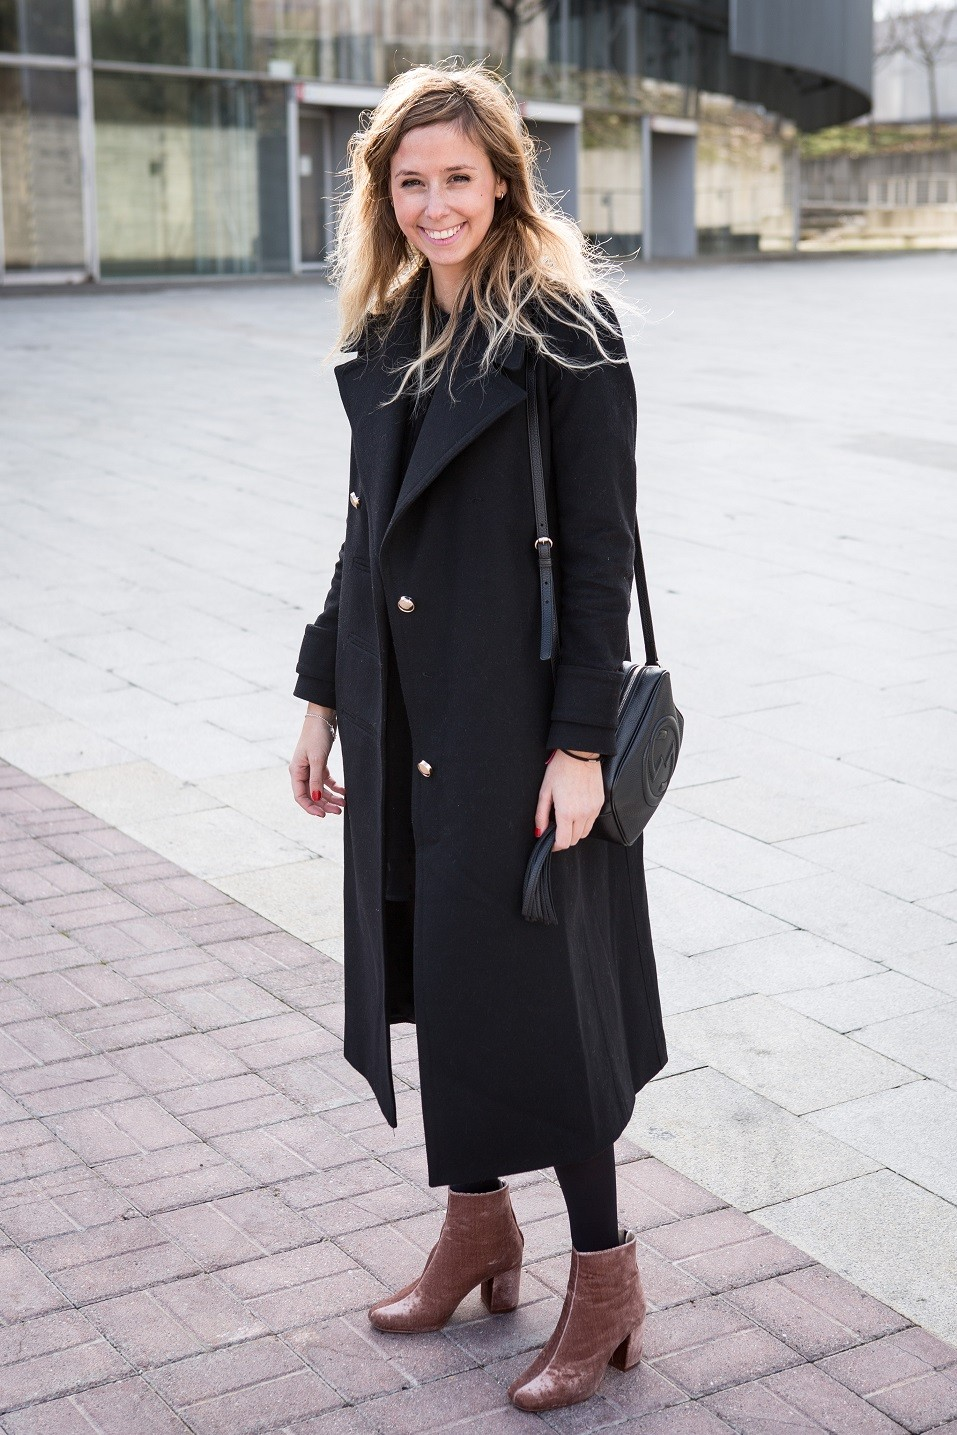 11 Non Boring Ways To Wear All Black According To Street Style Stars